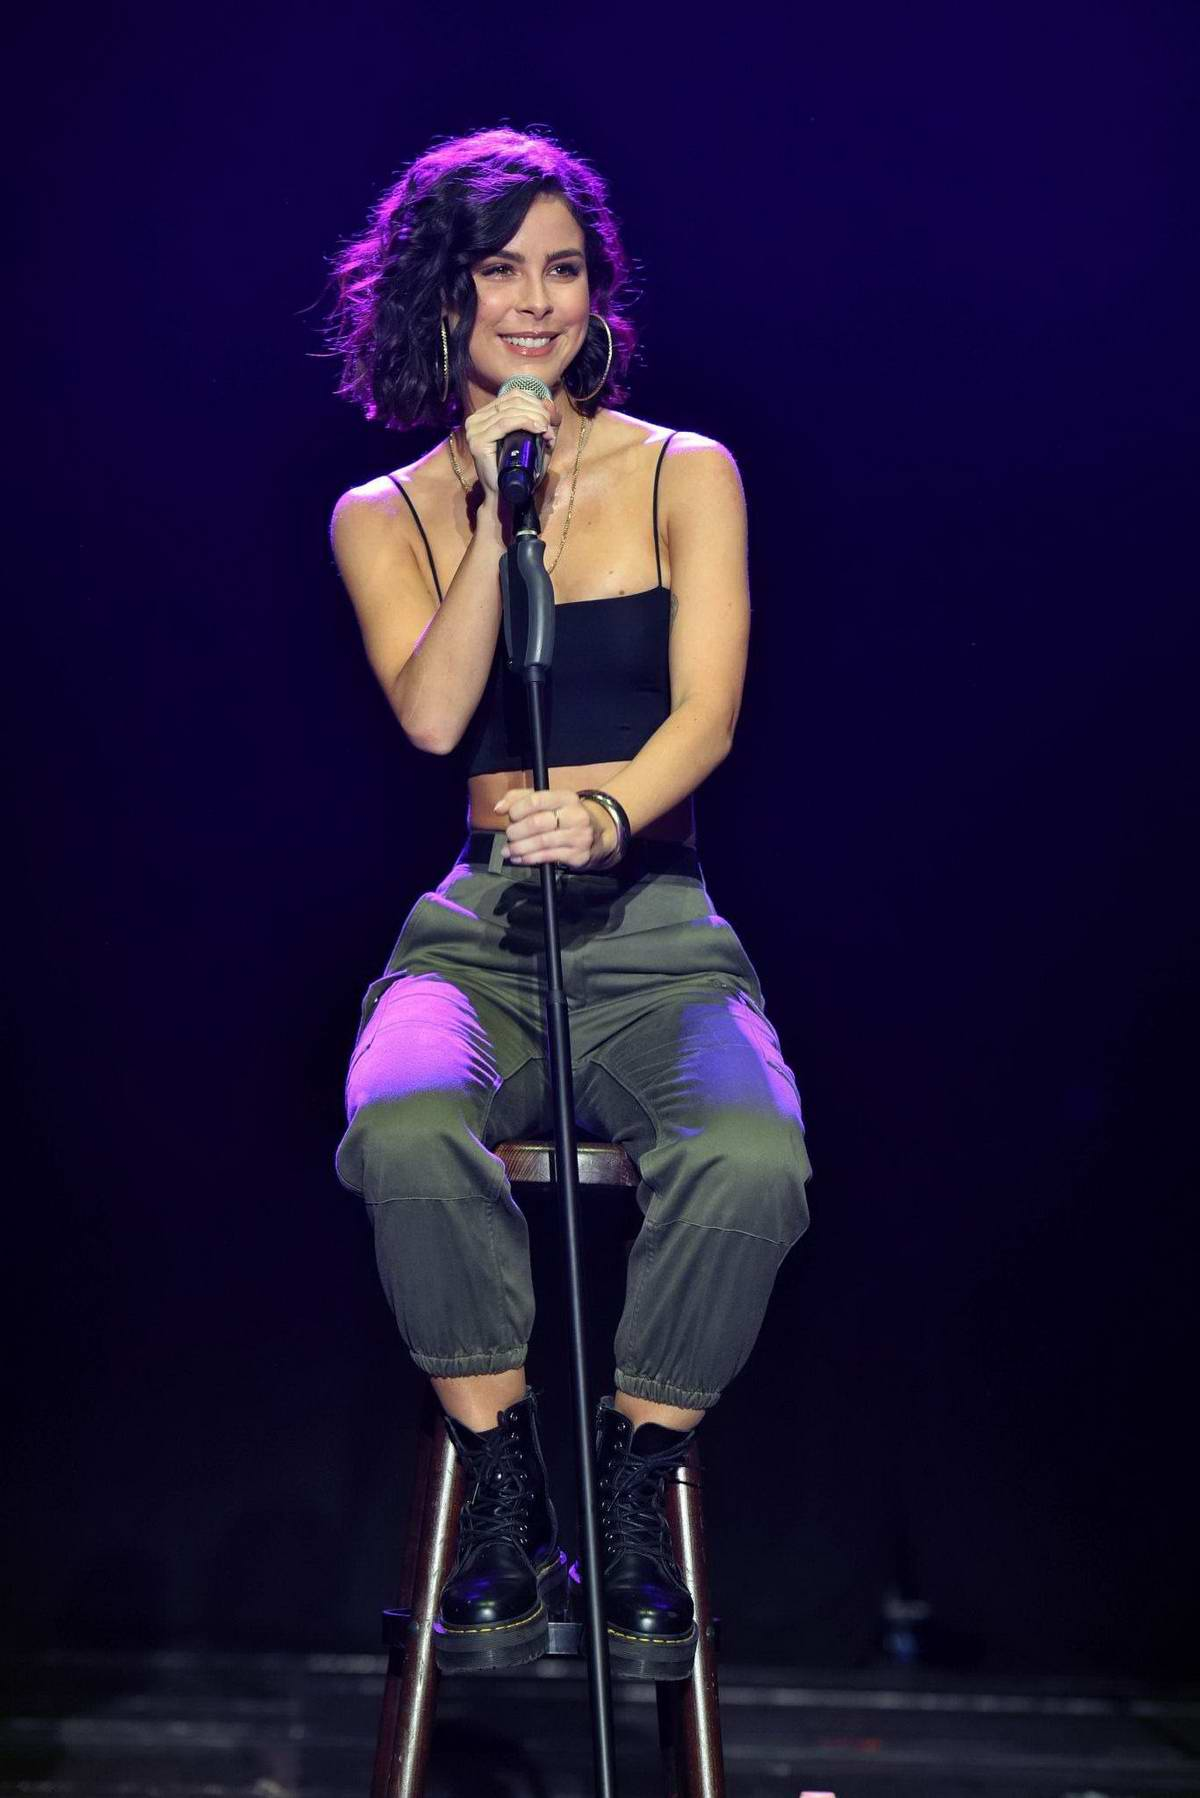 Lena Meyer-Landrut performs at Global Citizen event in Berlin, Germany